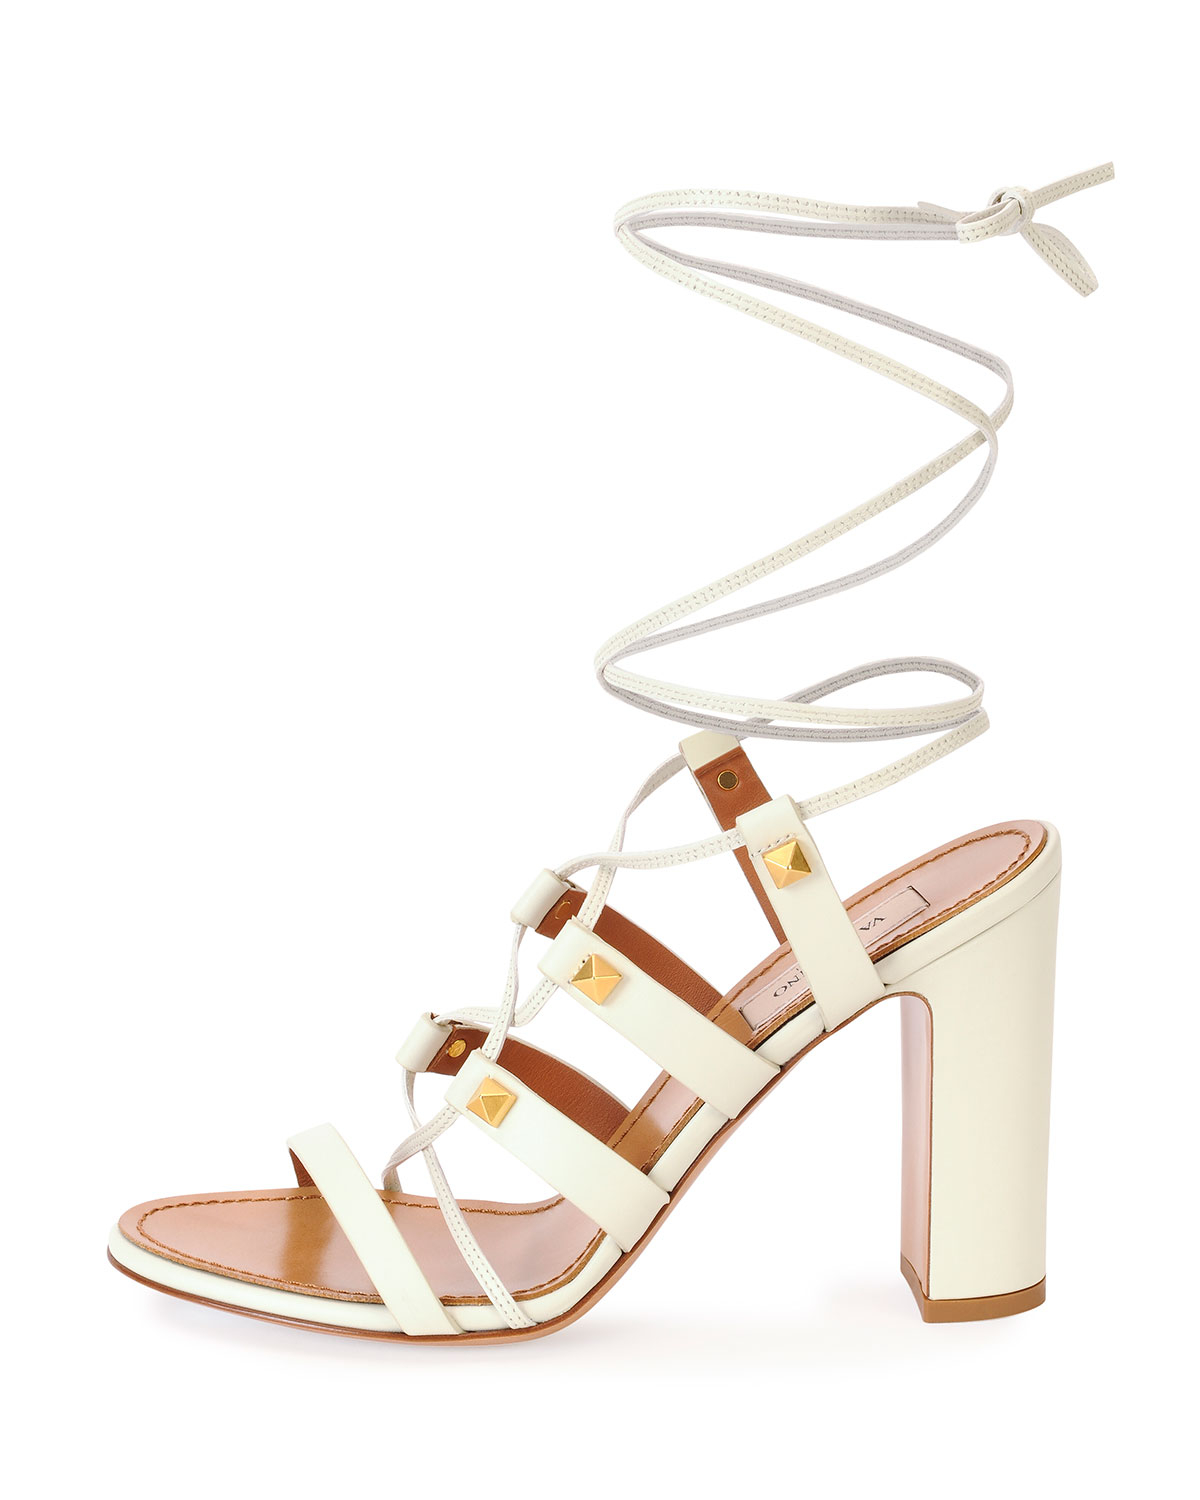 1e8037af608 Gallery. Previously sold at  Bergdorf Goodman · Women s Gladiator Sandals  Women s Valentino ...